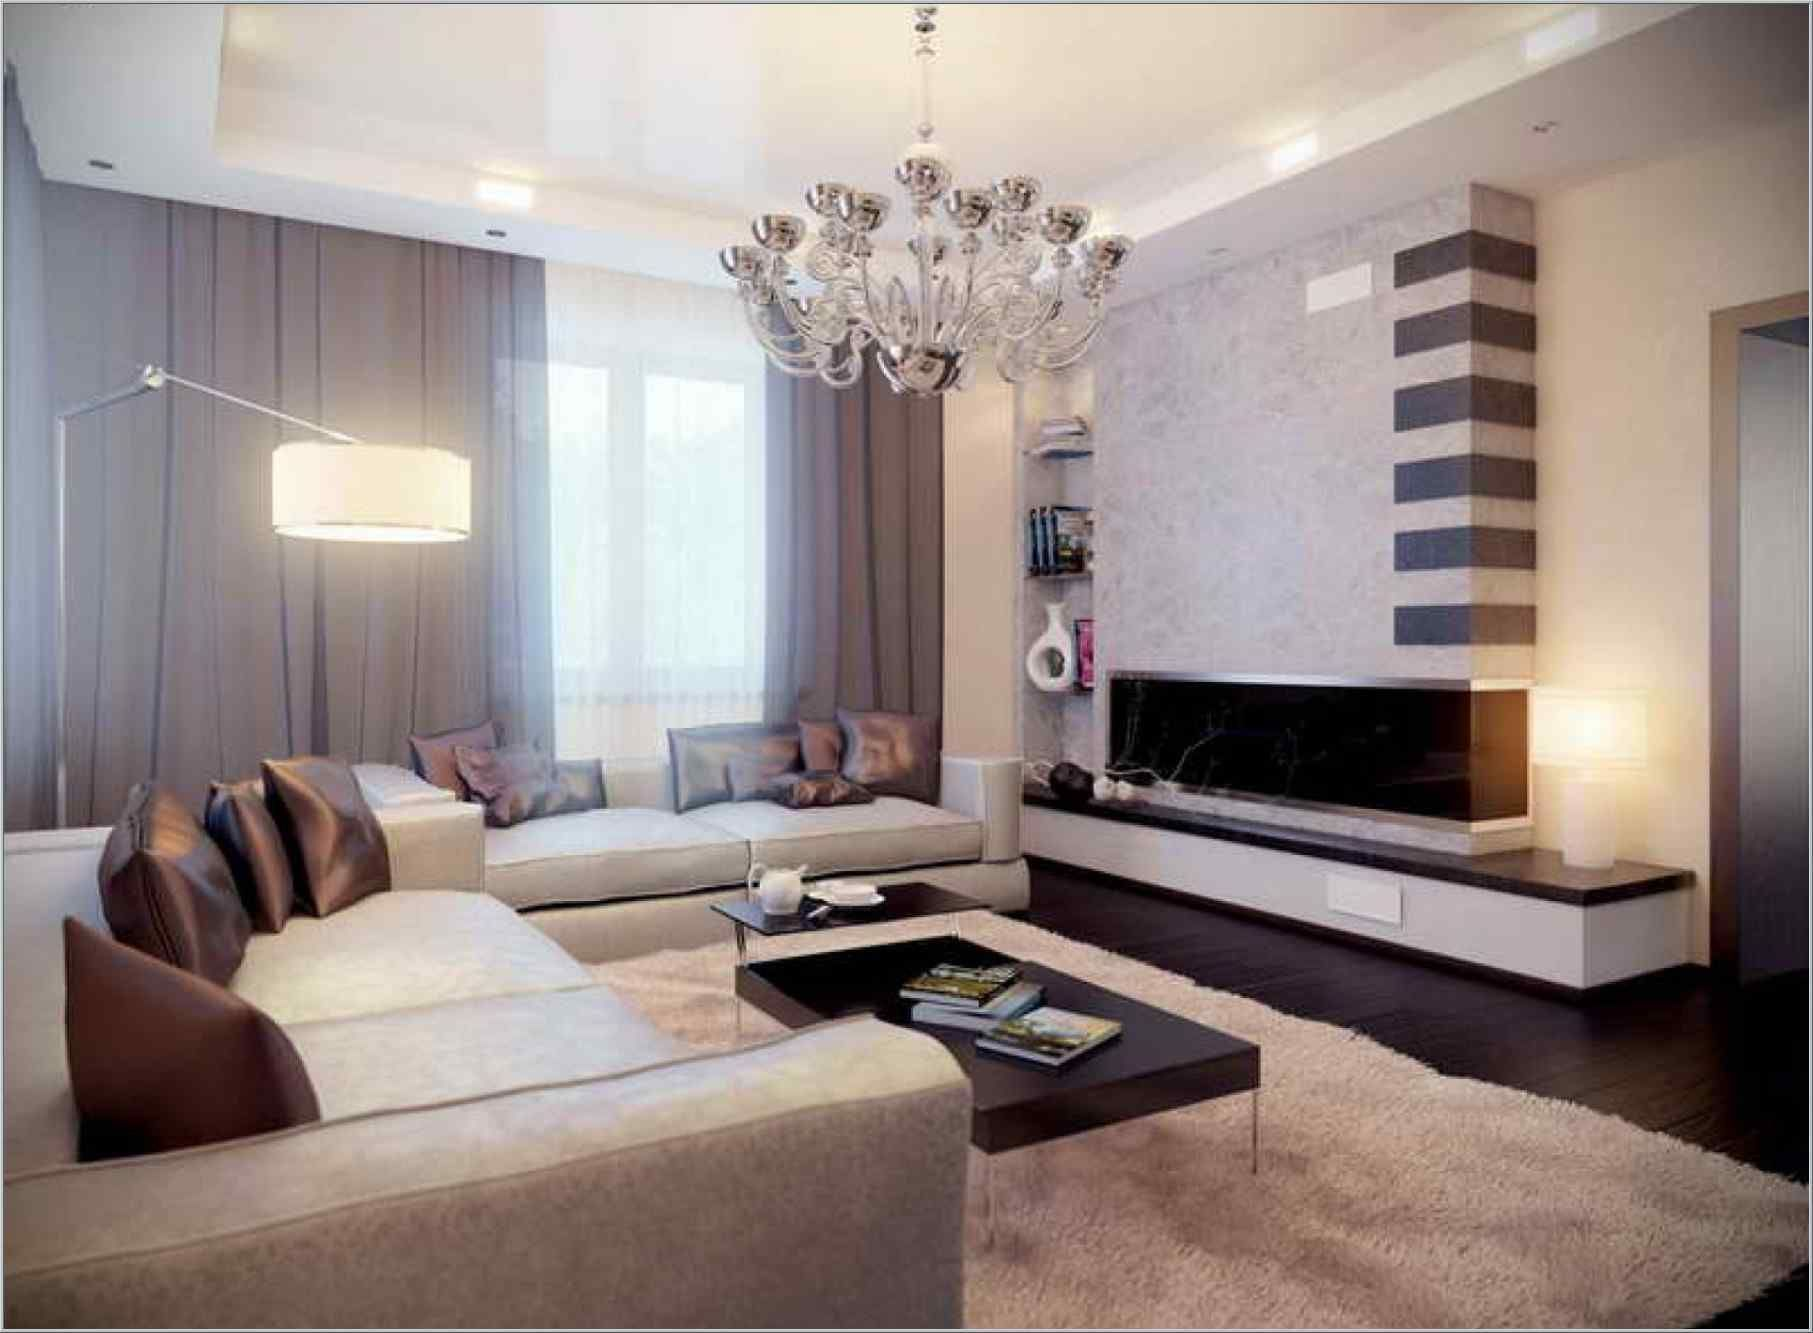 Modern Color Combination For Living Room Living Room Ideas Modern Color Colour Schemes Grey Best Of Interior Design Ideas Home Decorating Inspiration Moer Classy Living Room Living Room Living room elegant colors